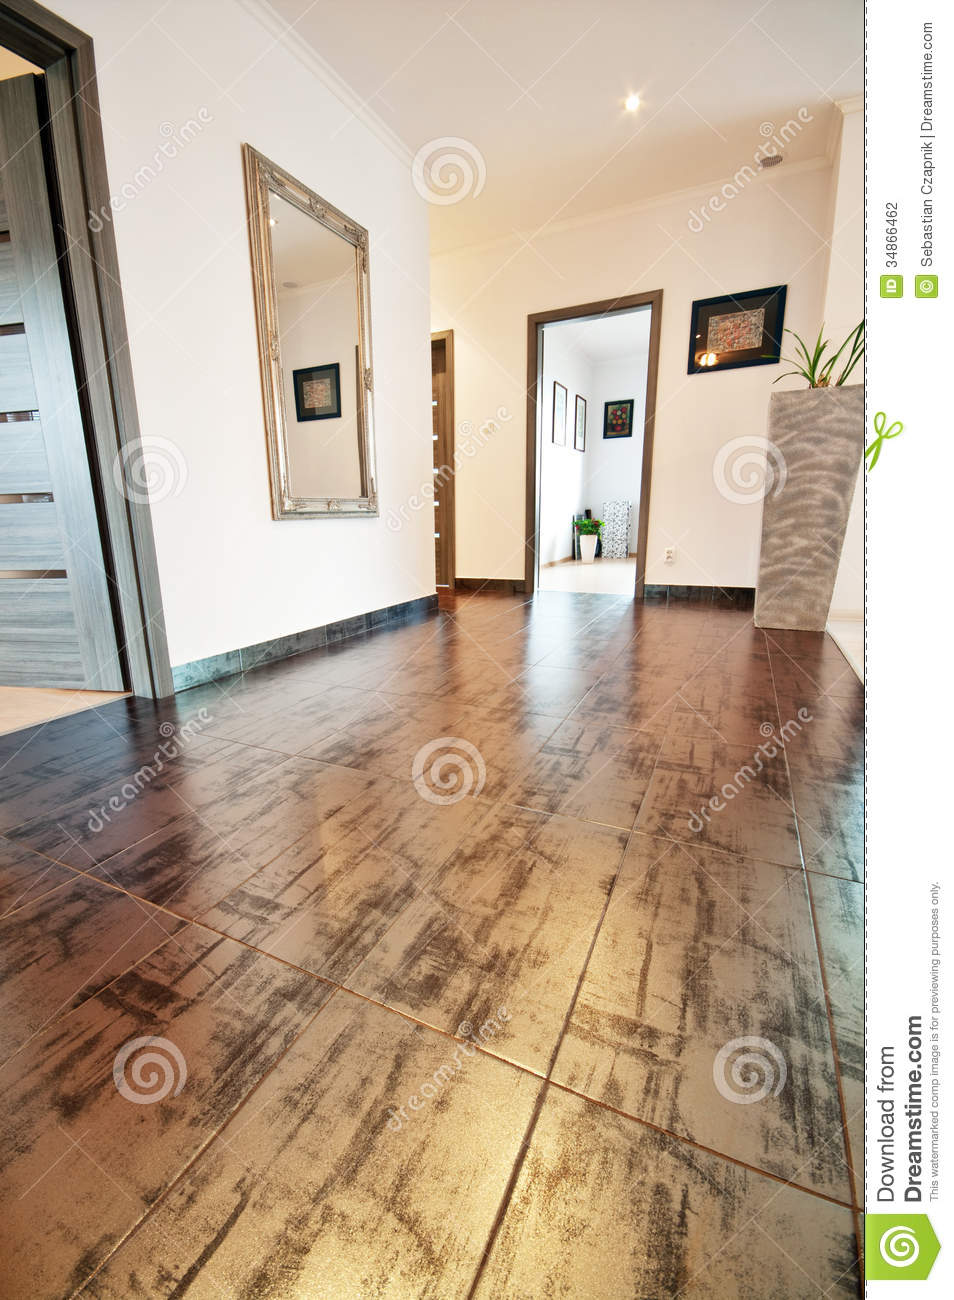 Hall With Decorative Floor Tiles Stock Photo Image 34866462